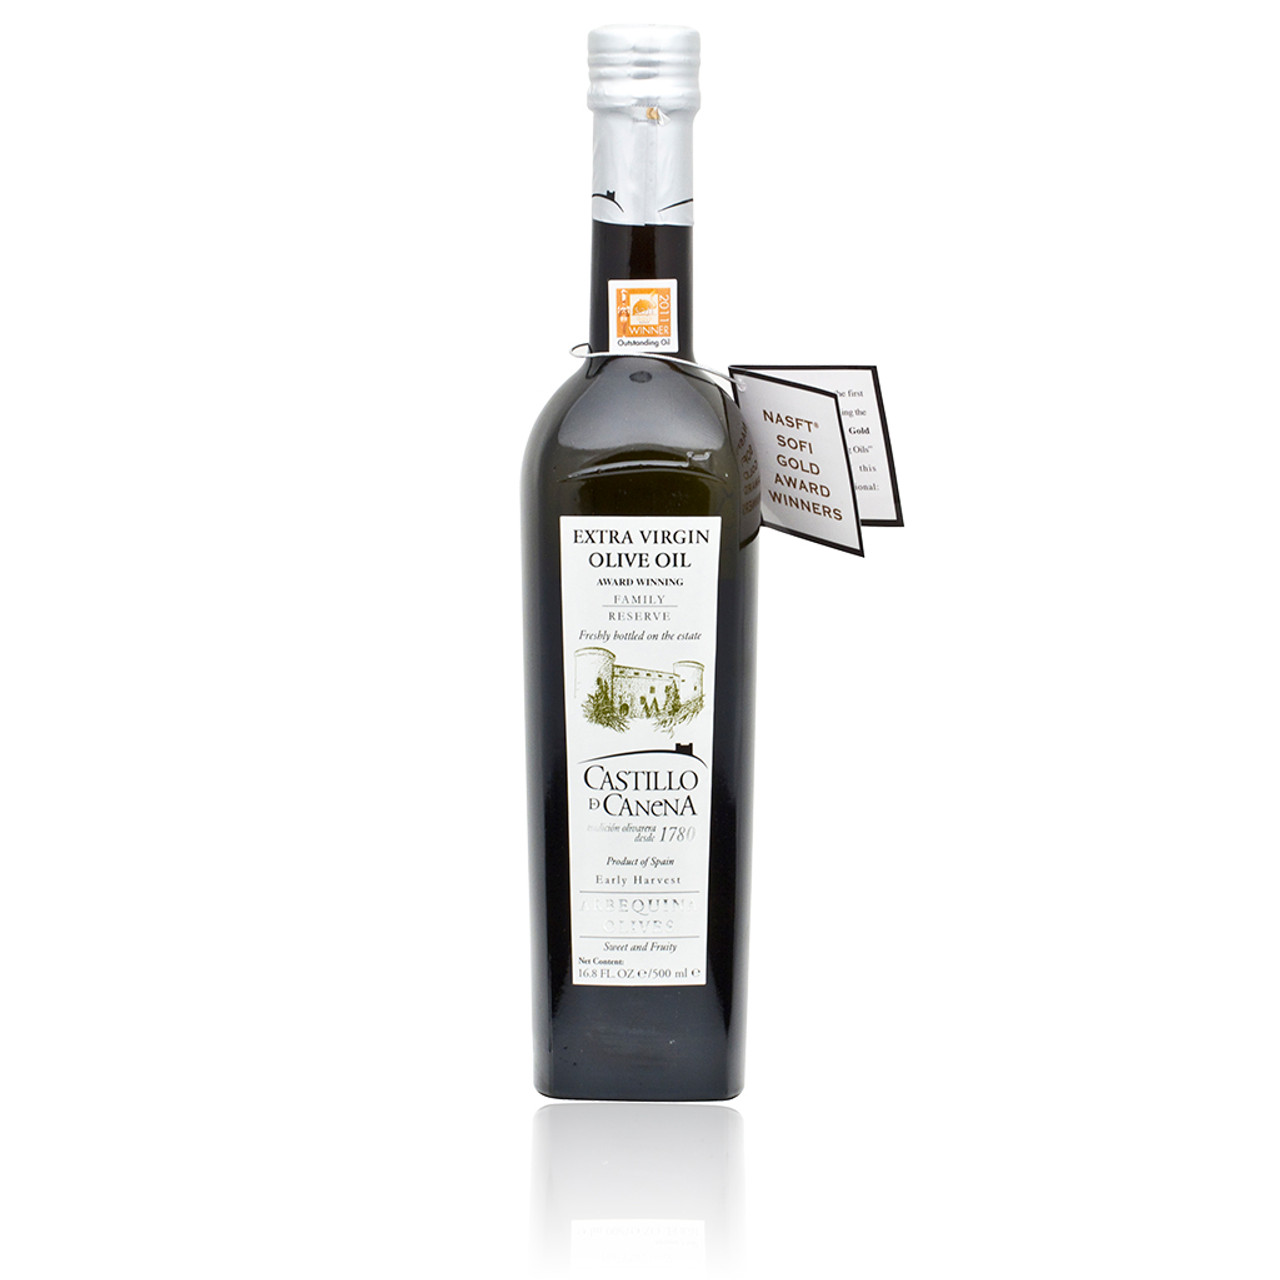 Extra Virgin Olive Oil Castillo de Canena Arbequina Family Reserve 500ml